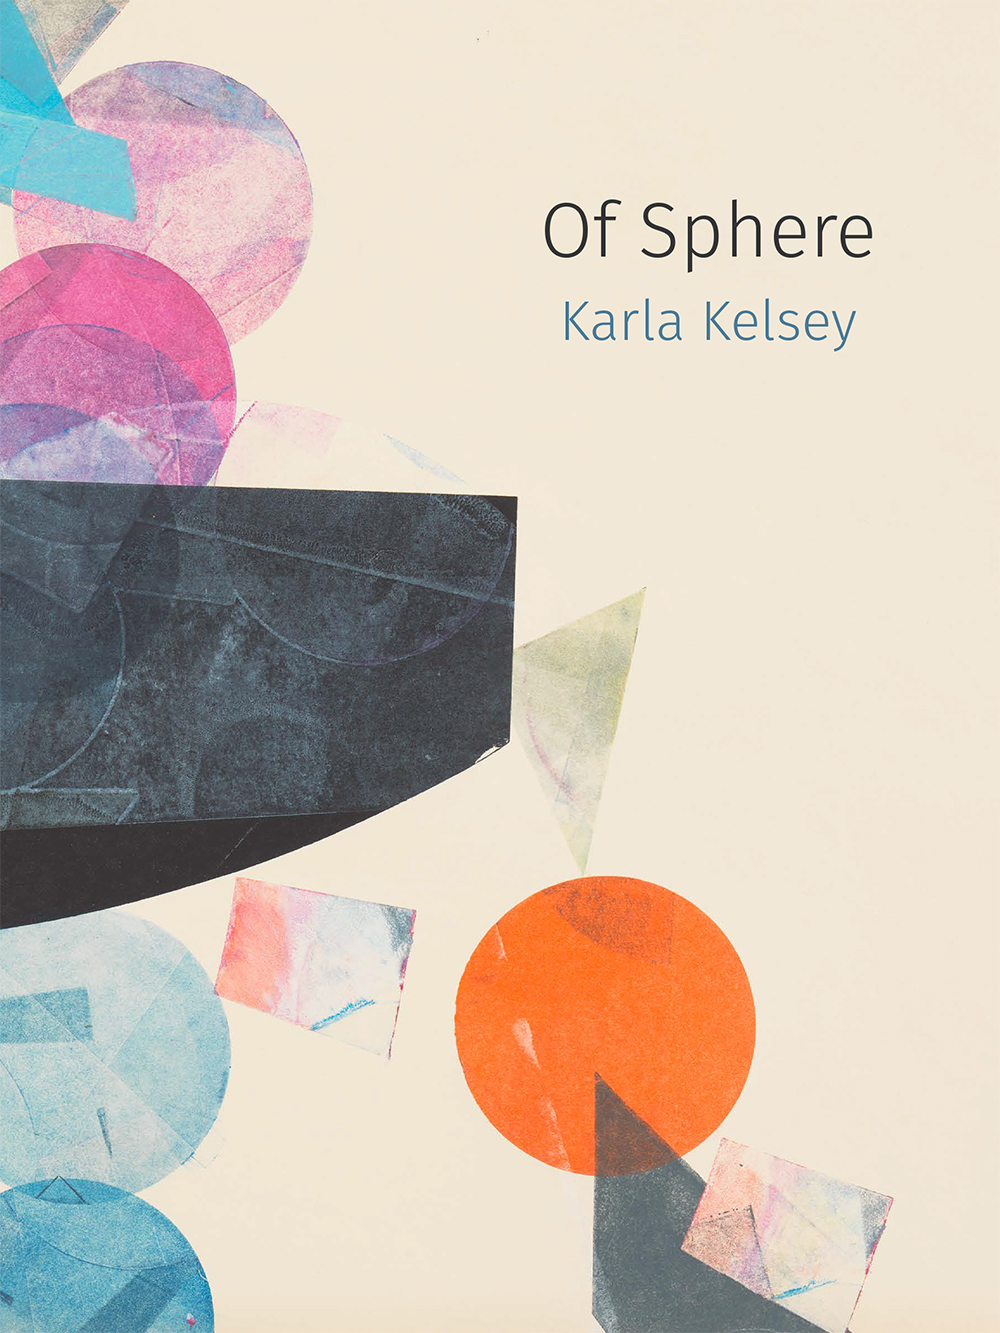 Of Sphere   by Karla Kelsey   Essay Press , 104 pages, November 1, 2017